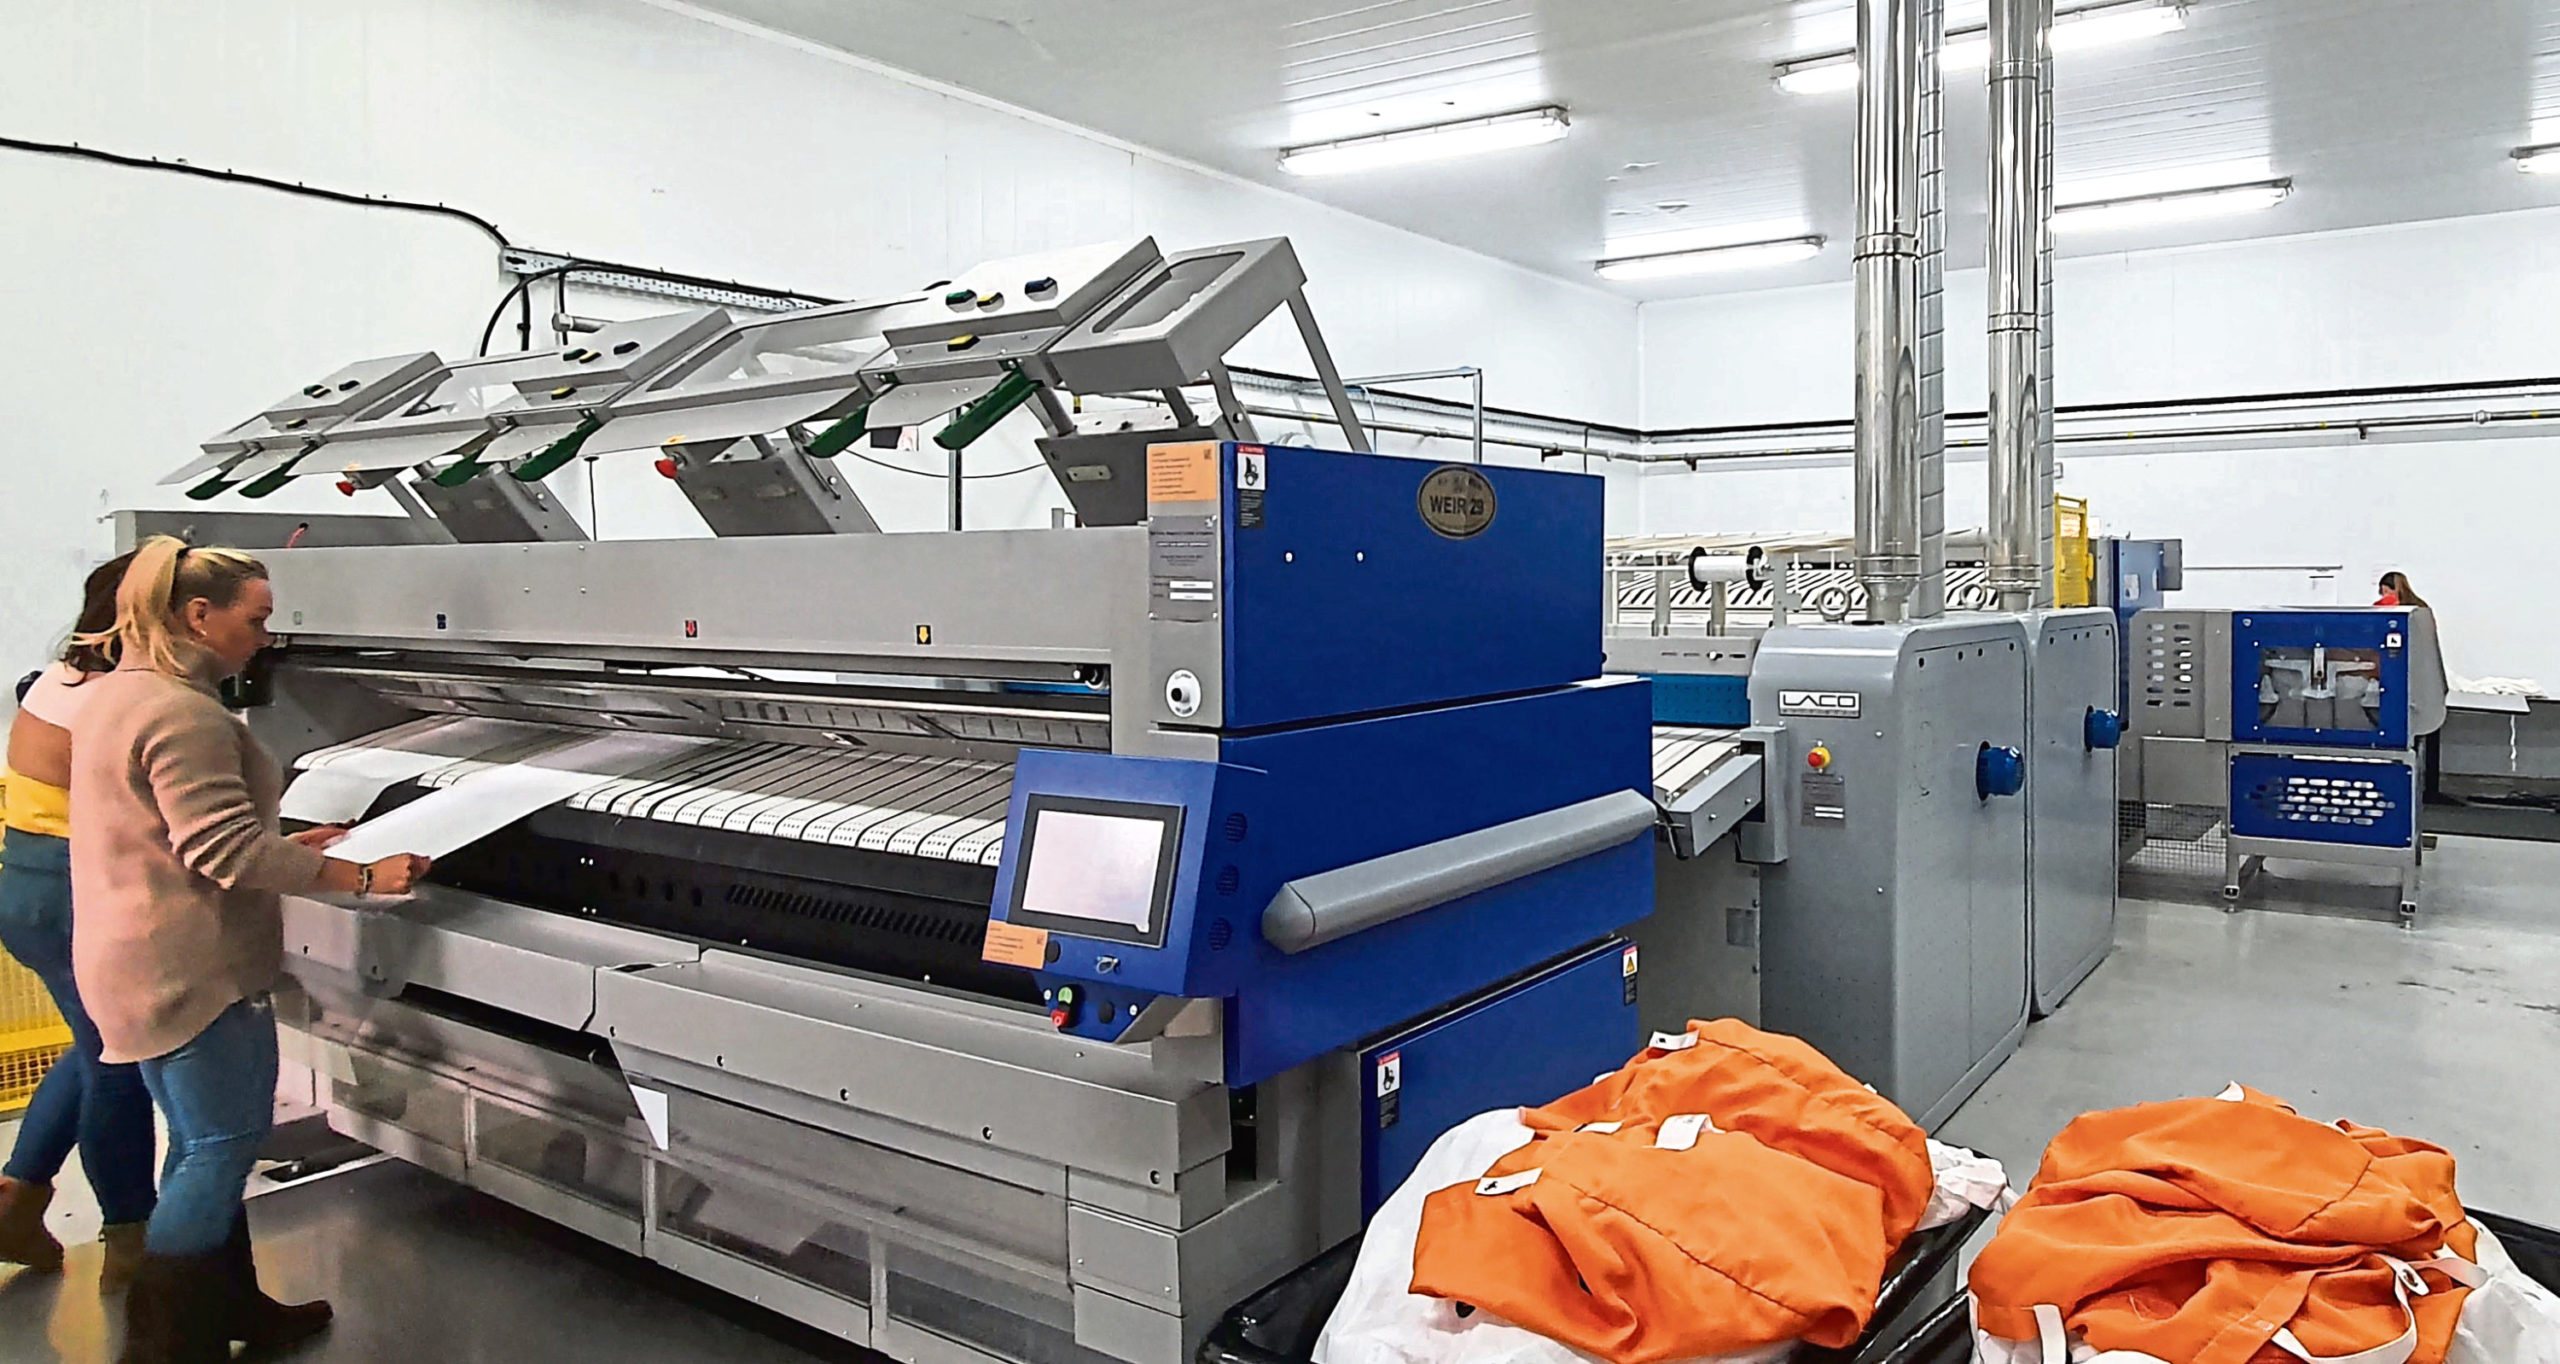 Commercial laundry firm MacKleeners has installed a new industrial iron to increase capacity, productivity and service quality.